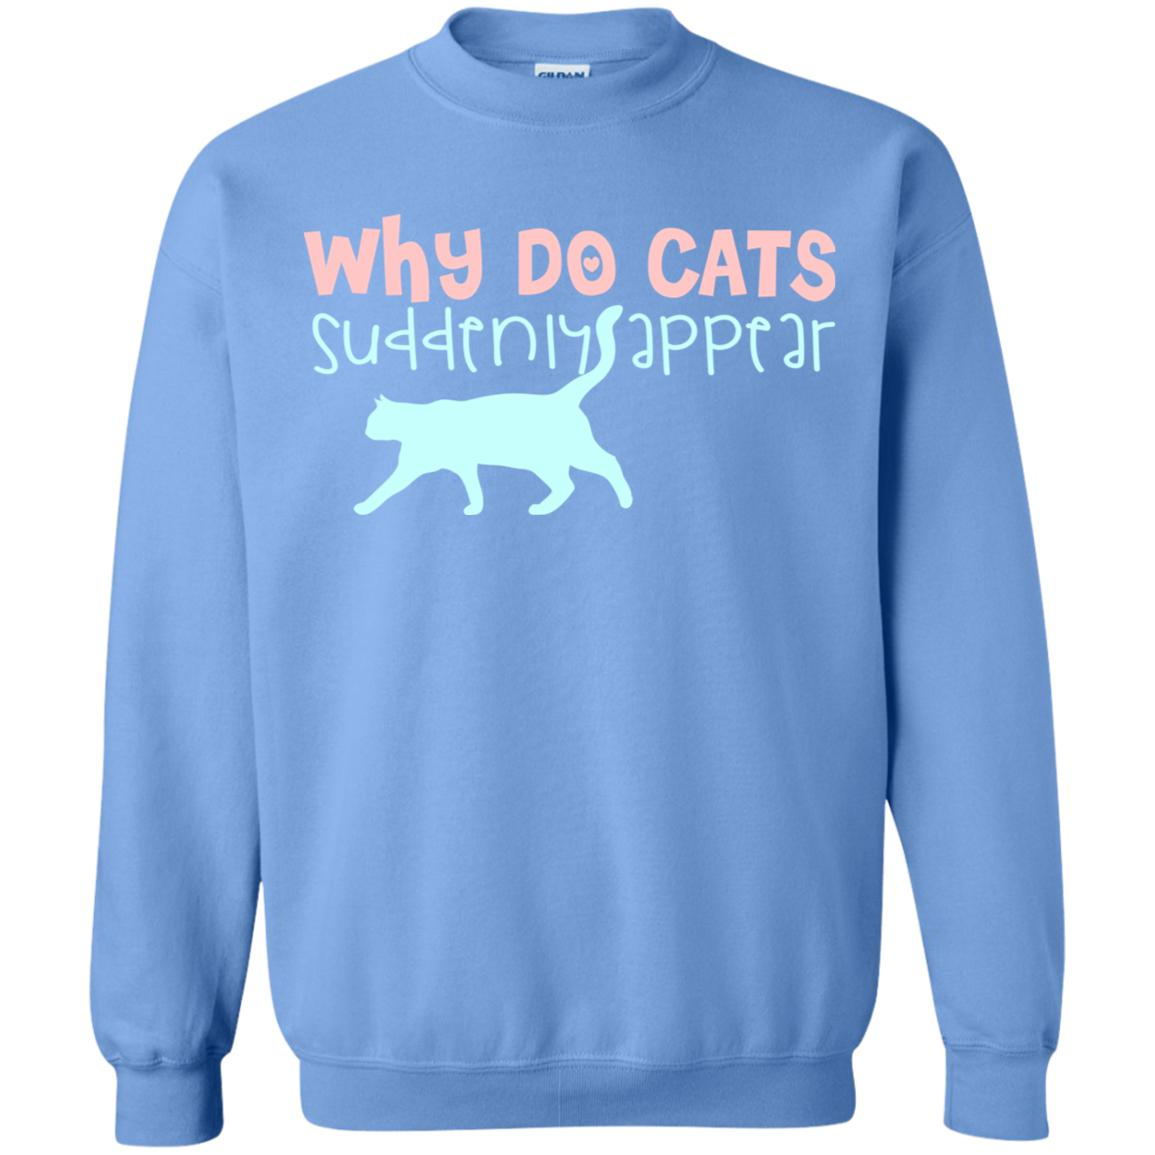 WHY DO CATS SUDDENLY APPEAR 😻 SWEATSHIRT